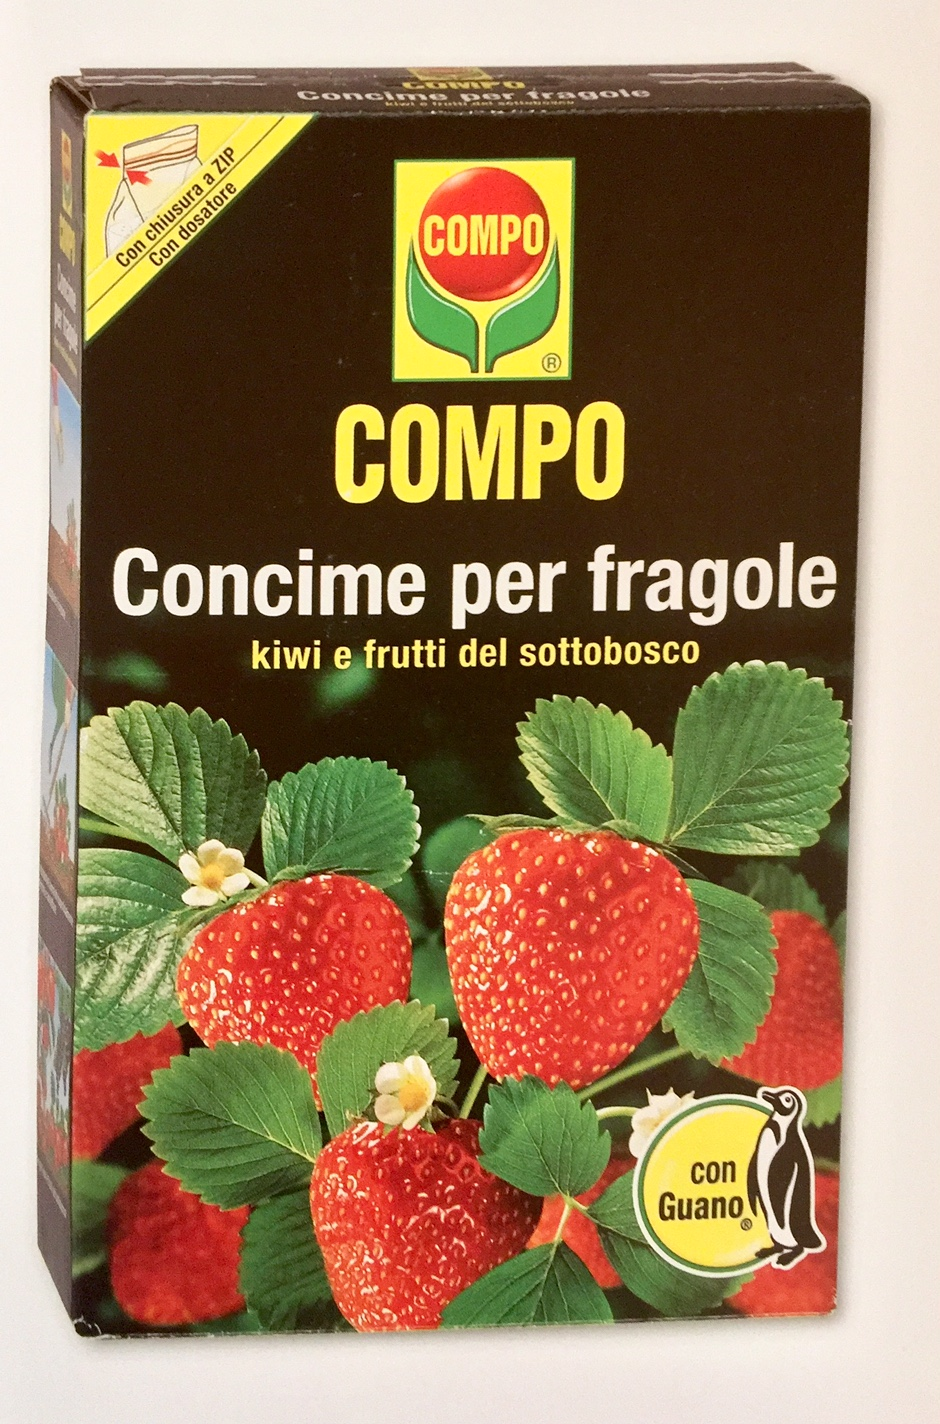 Concime per fragole farfa garden center progettazione for Piantine orto on line